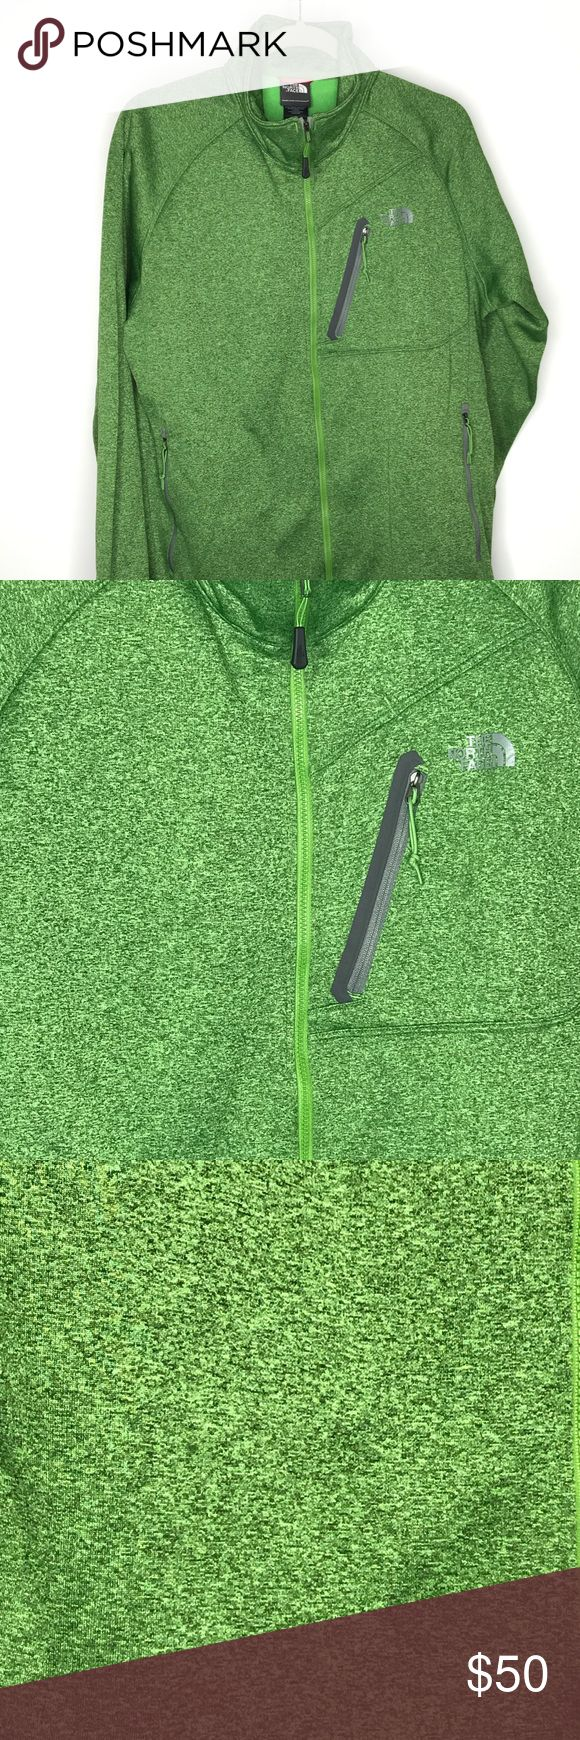 North Face Men's jacket with fleece inside North Face Men's full zip jacket with fleece inside - size Large. Worn once. Zipper pockets and small front pocket with zipper. North Face Jackets & Coats